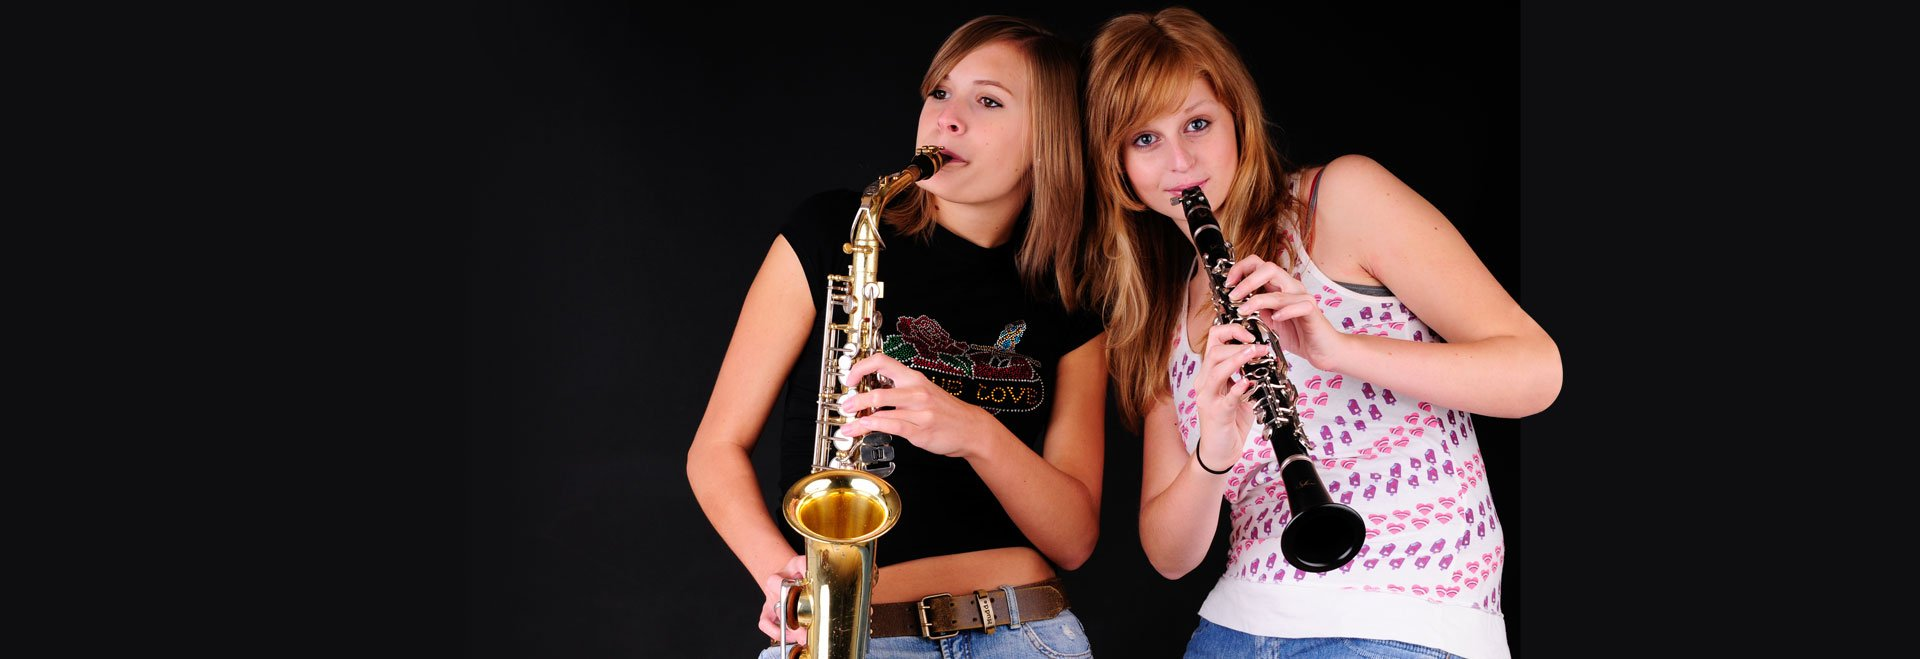 Girls on Trumpets